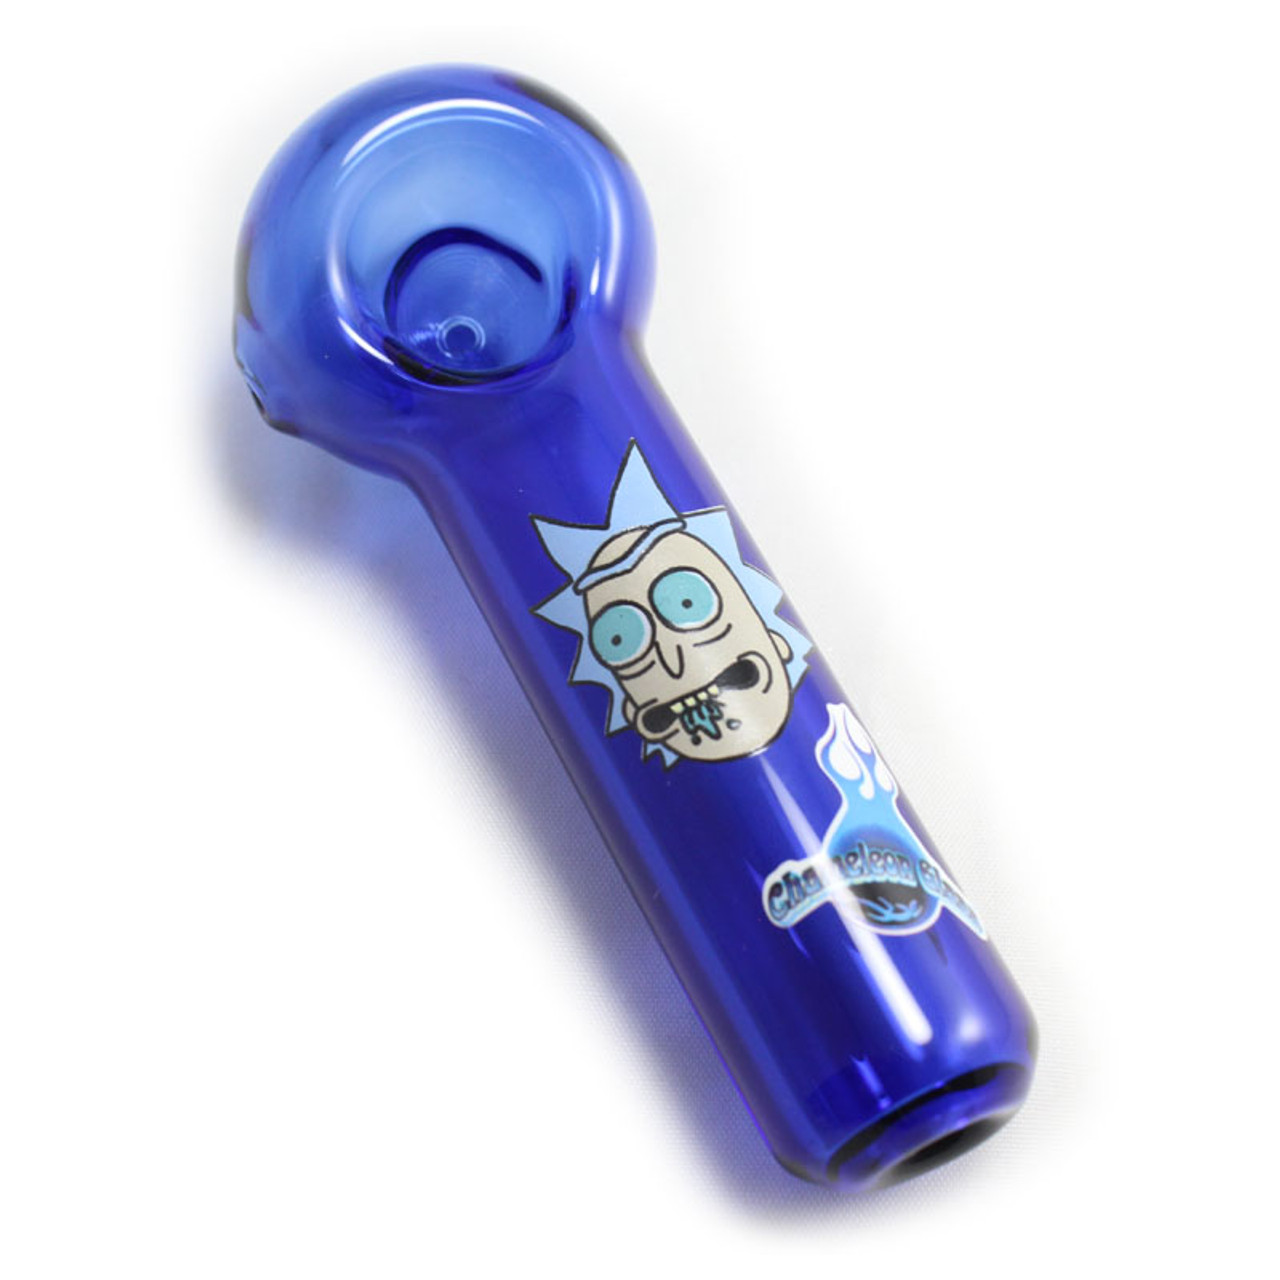 Chameleon Glass - Tripping Rick Spoon Pipe